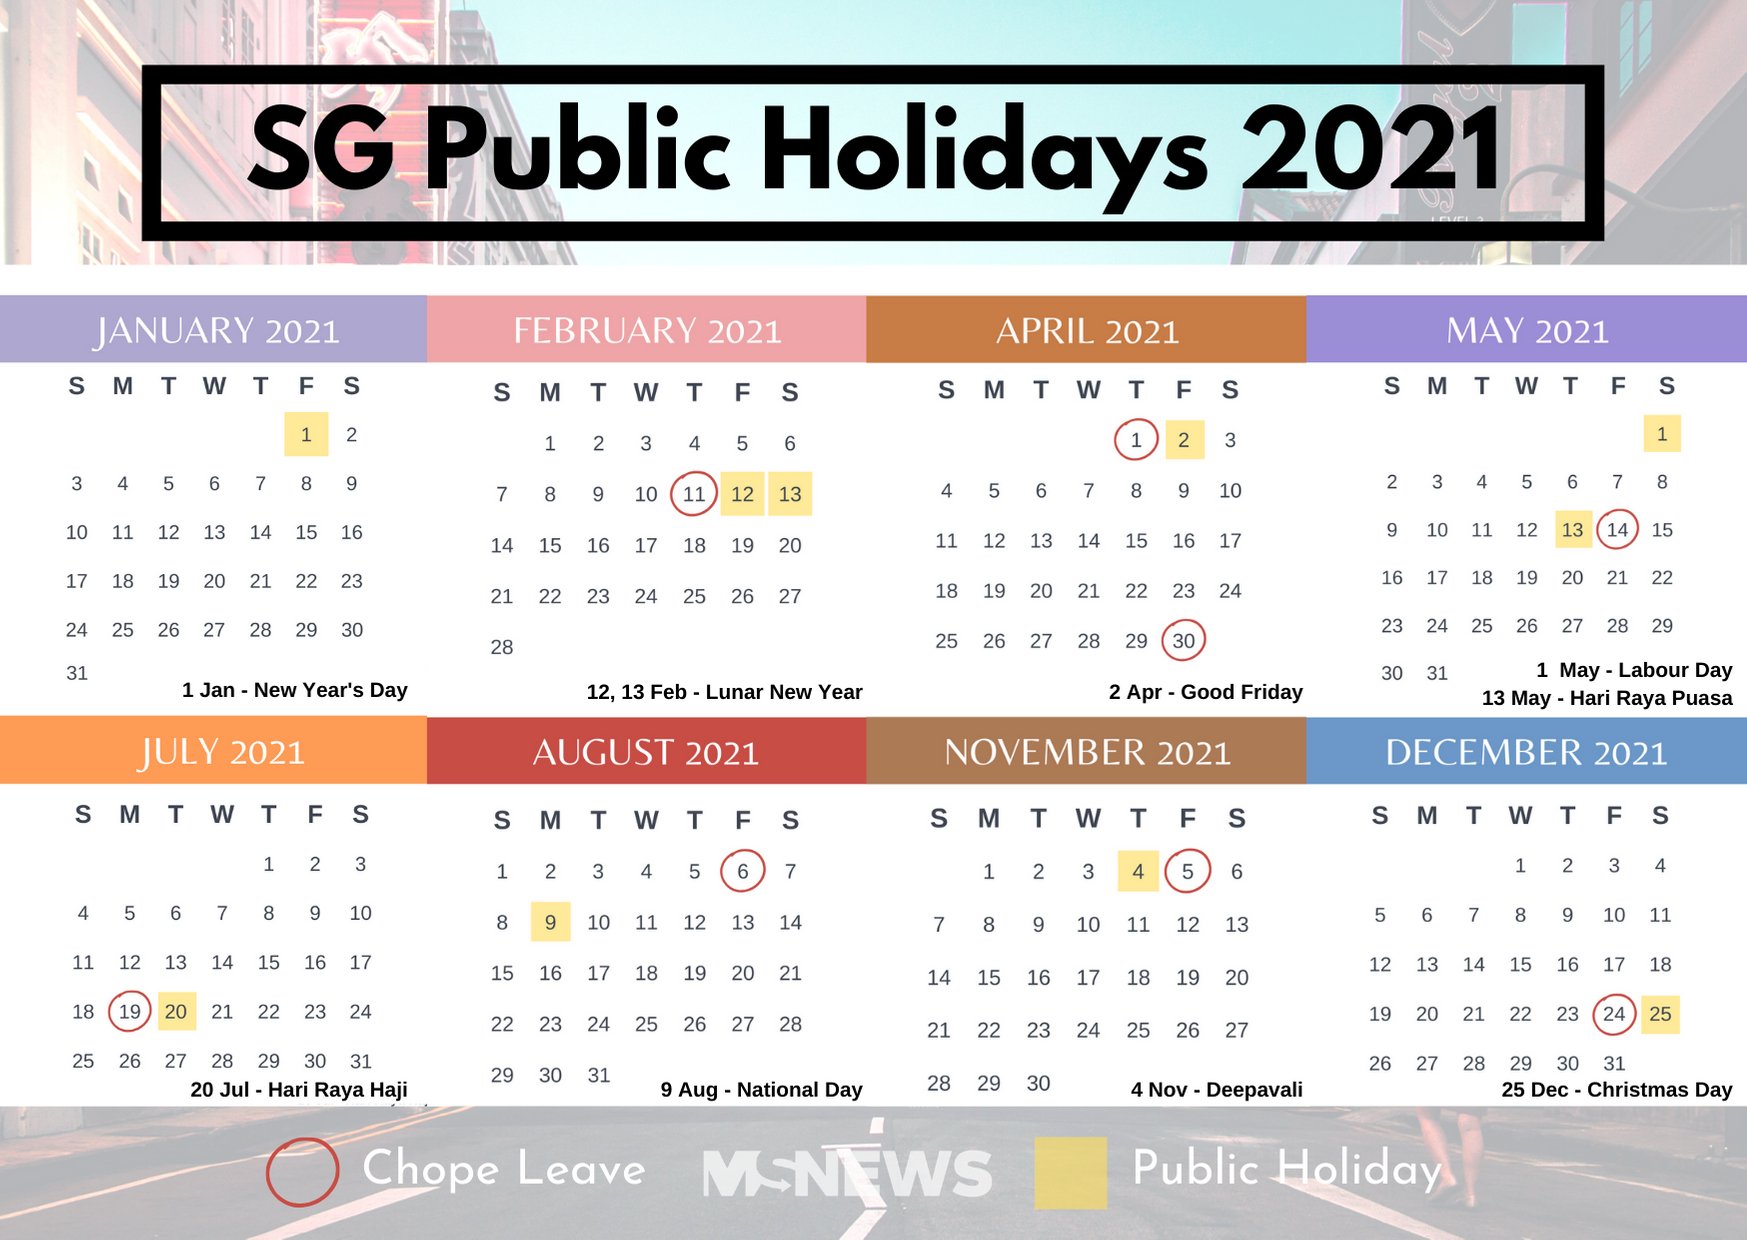 S'Pore Public Holidays 2021 Will Give You 9 Long Weekends